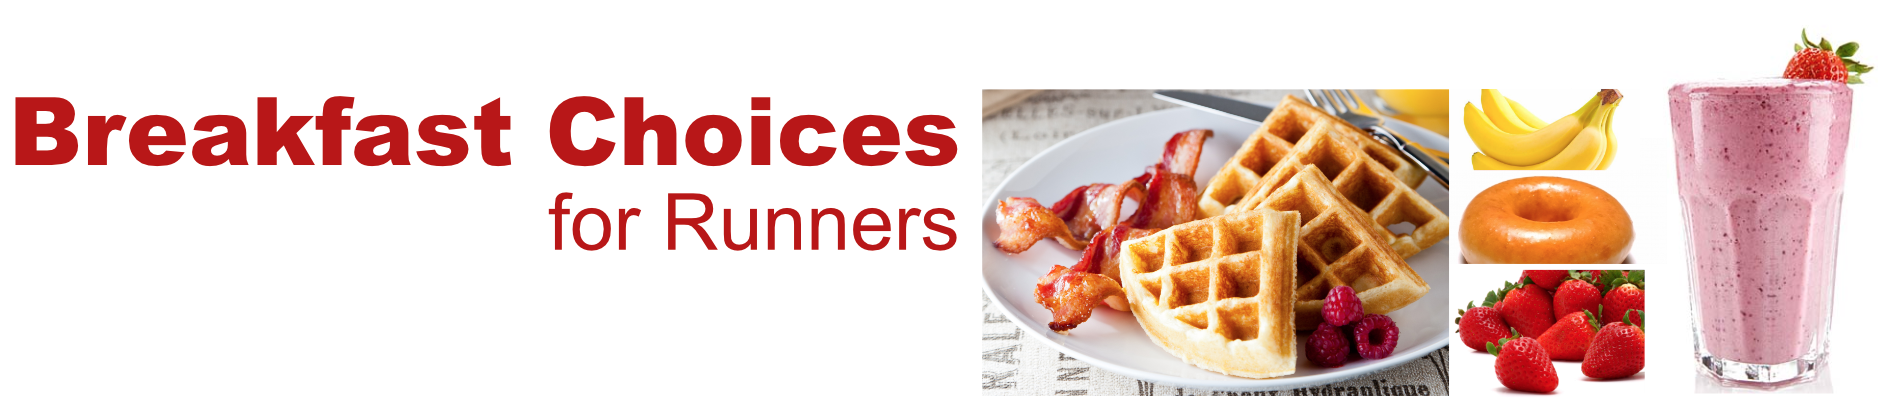 breakfast-choices-for-runners.jpg